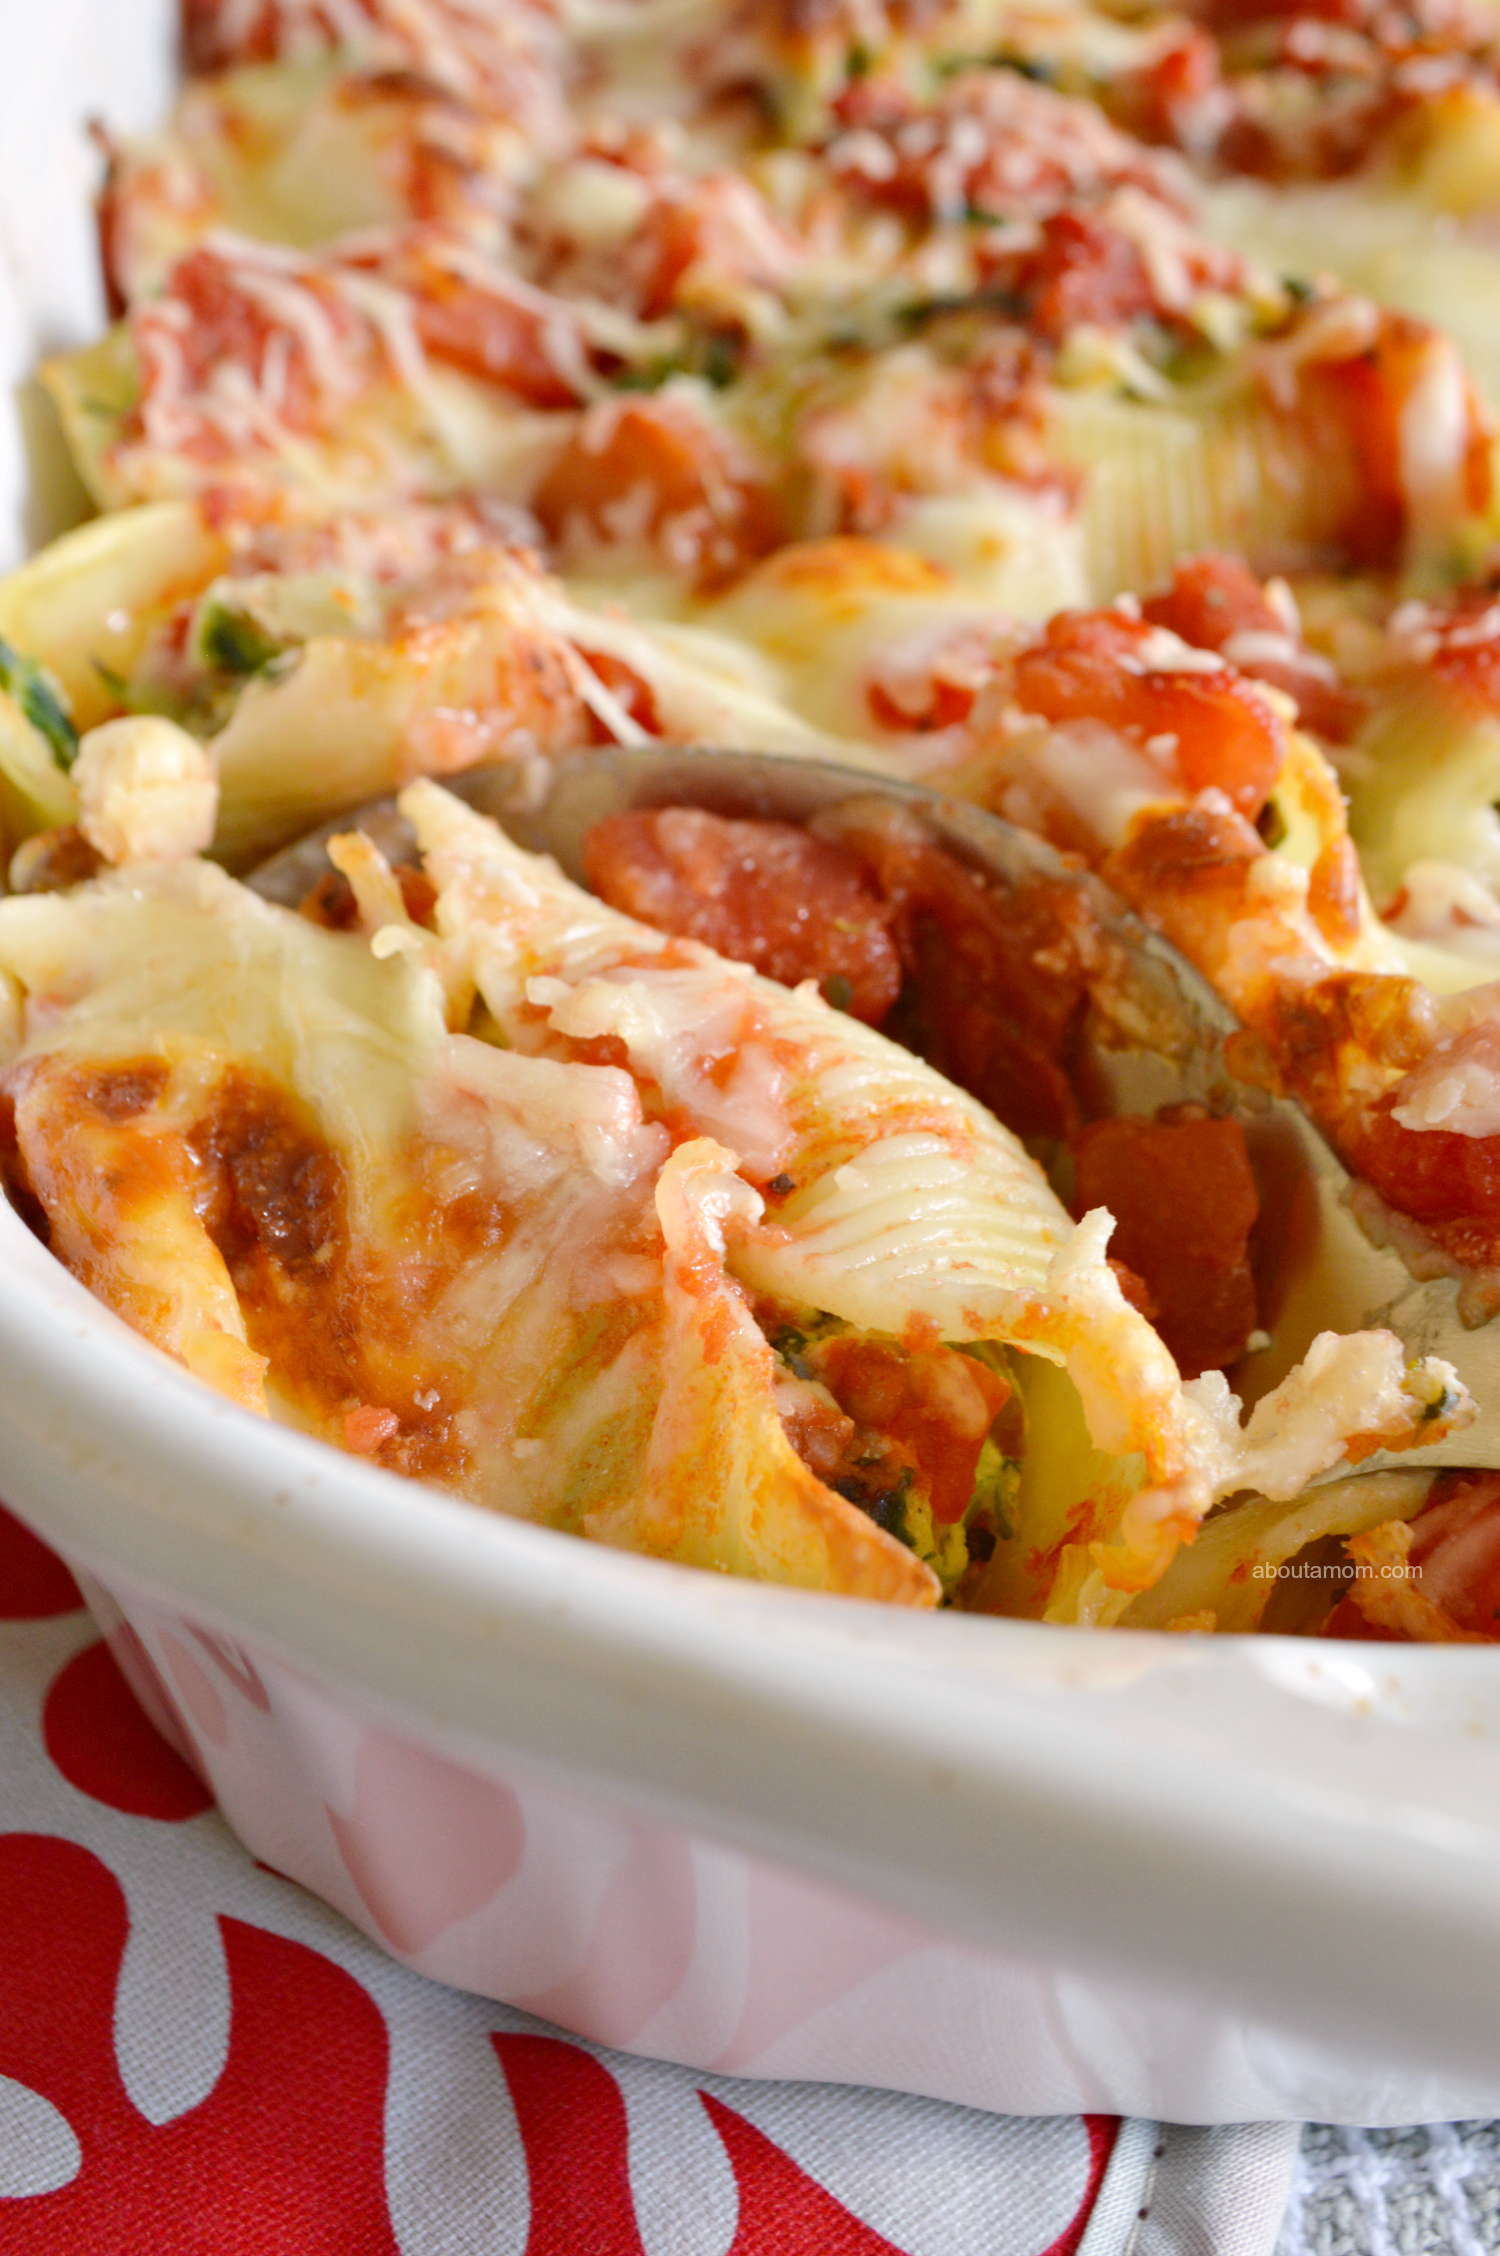 Italian Sausage, Spinach and Ricotta Stuffed Shells recipe. Jumbo pasta shells filled with a mixture of sweet Italian sausage, spinach and ricotta cheese. Smothered in a chunky red sauce and topped with Mozzarella and Parmesan cheeses. A worthy holiday recipe.